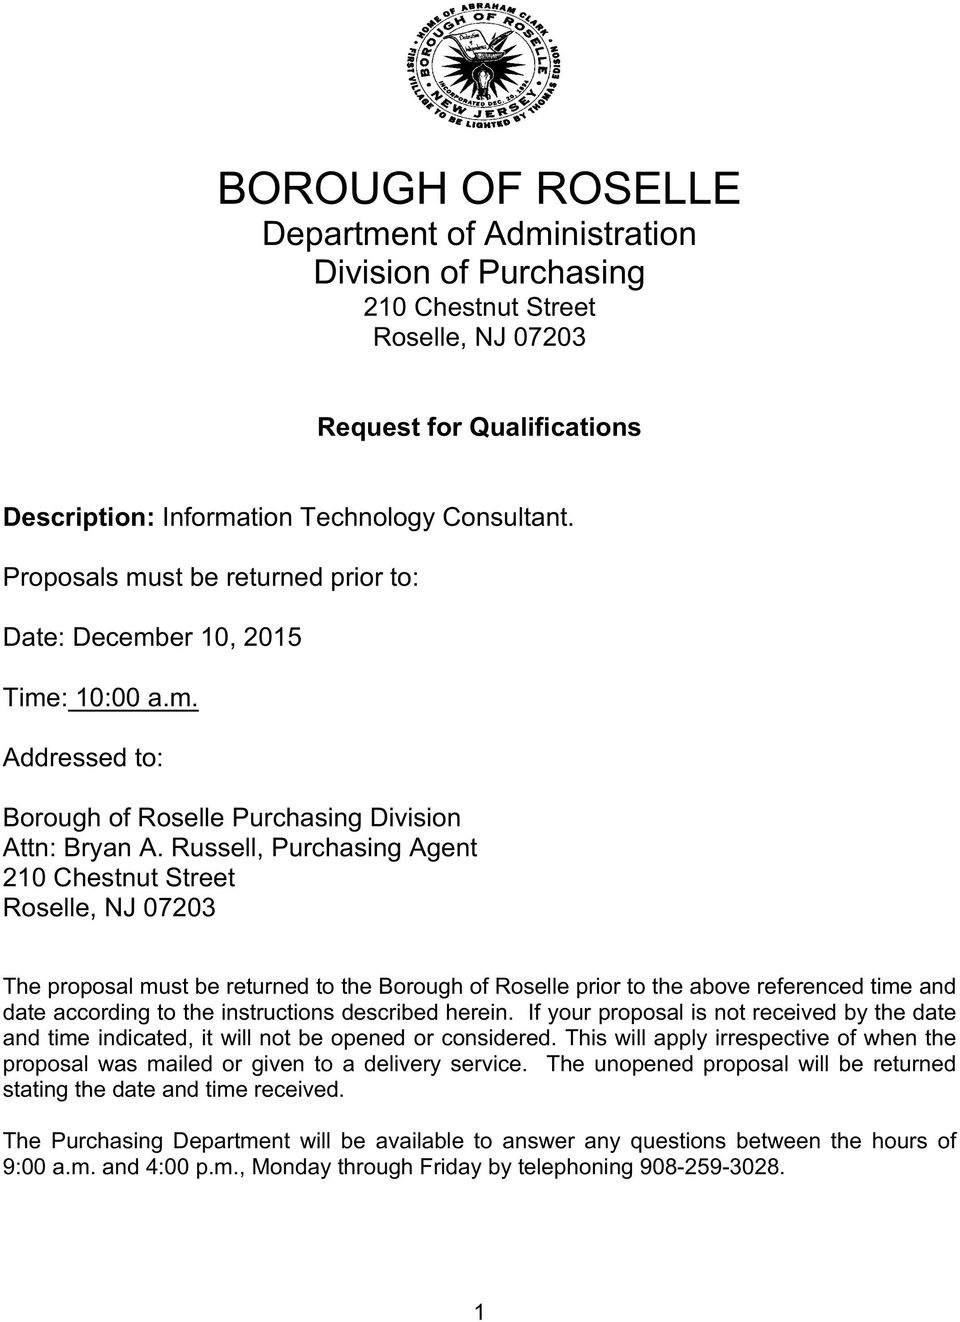 Russell, Purchasing Agent 210 Chestnut Street Roselle, NJ 07203 The proposal must be returned to the Borough of Roselle prior to the above referenced time and date according to the instructions